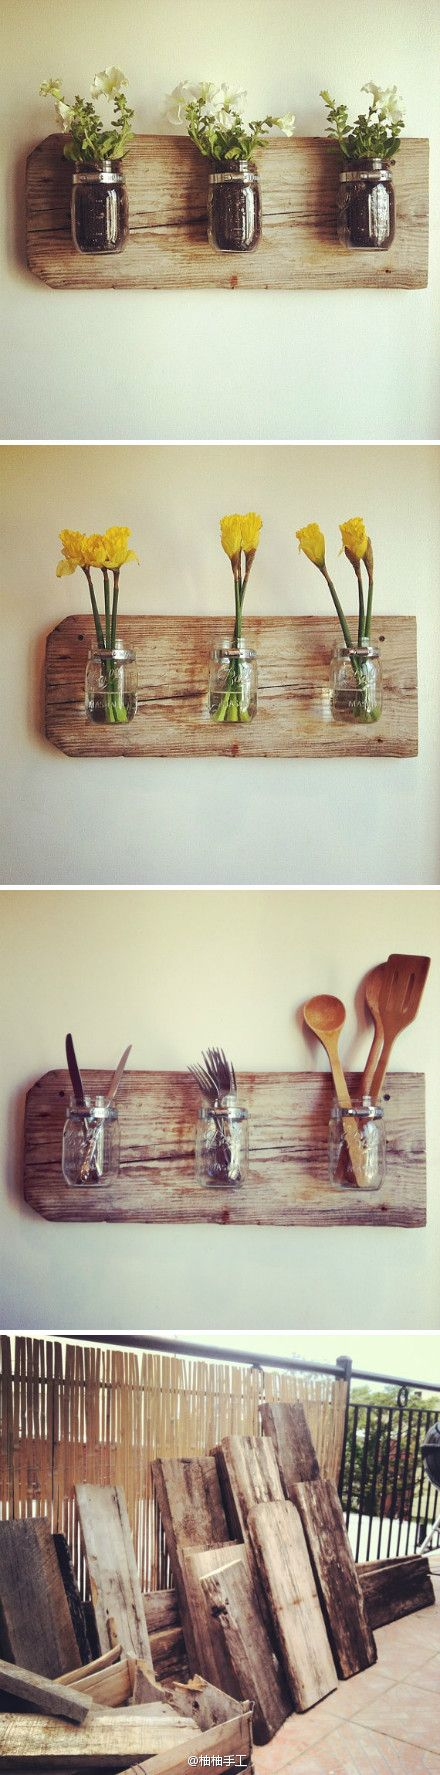 Cute idea for old barn wood